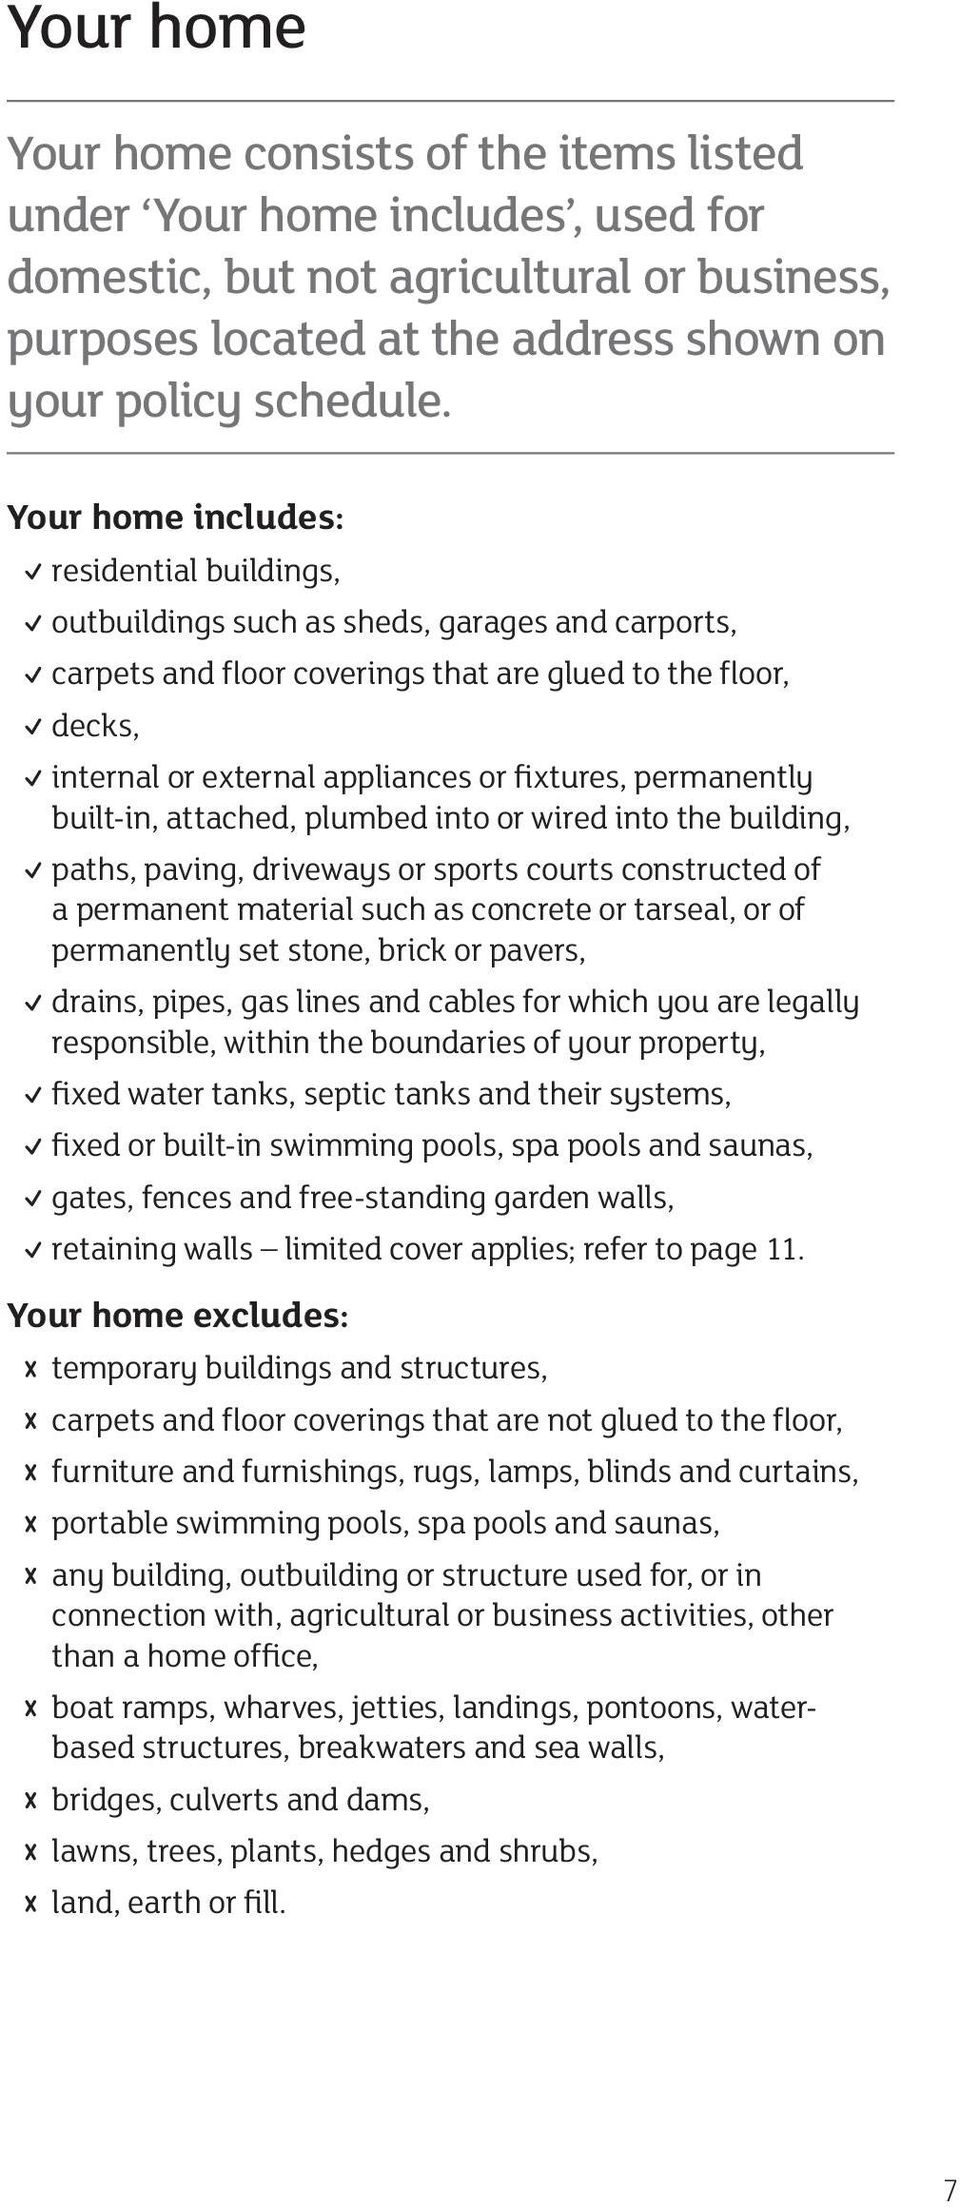 fixtures, permanently built-in, attached, plumbed into or wired into the building, paths, paving, driveways or sports courts constructed of a permanent material such as concrete or tarseal, or of